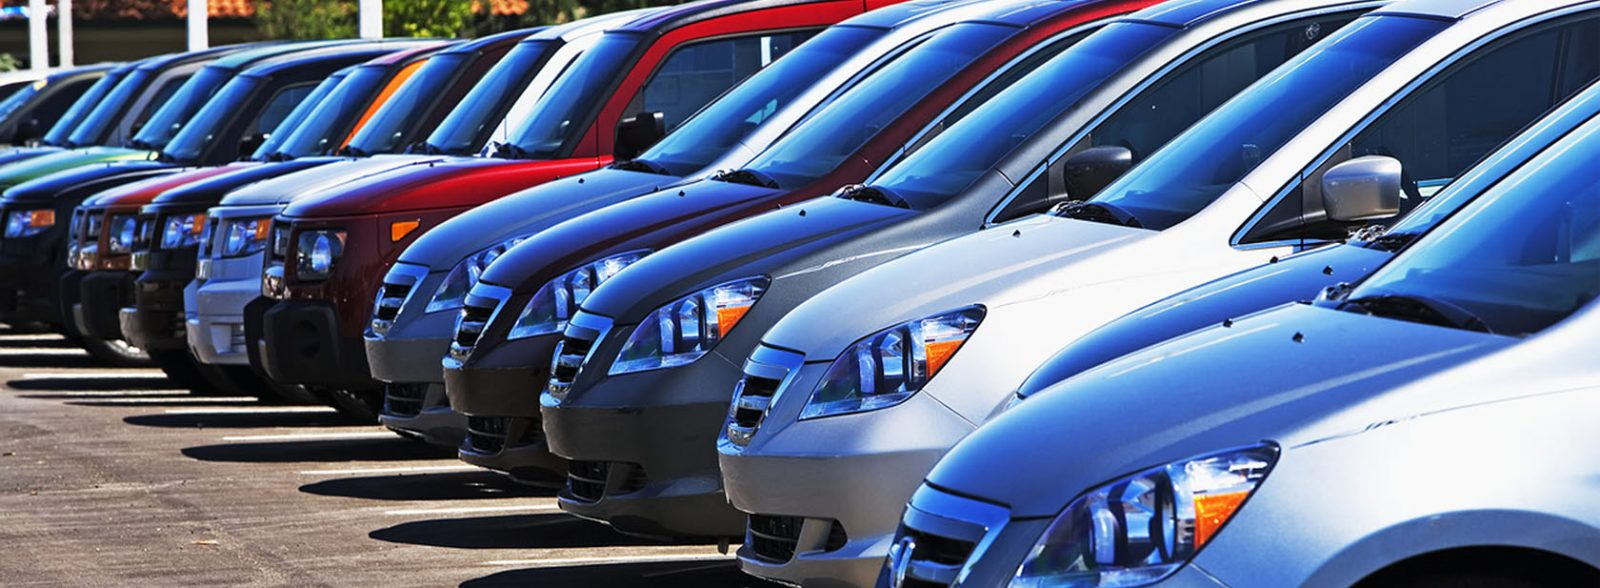 4 Things You Need to Take Care of Before Buying a Used Car